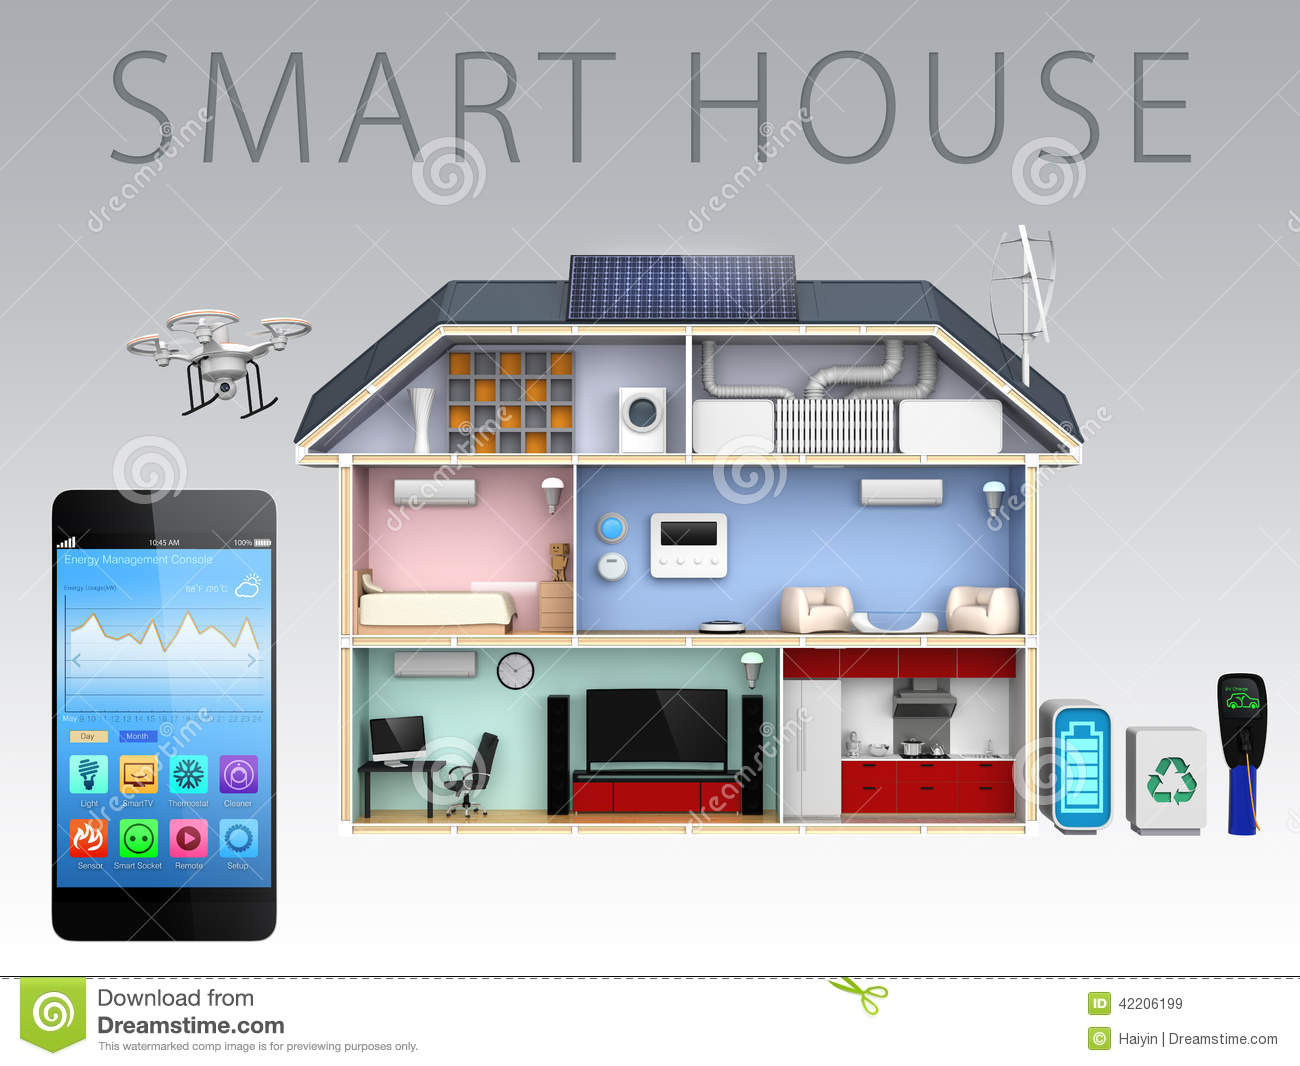 Smartphone App And Energy Efficient House For Smart House